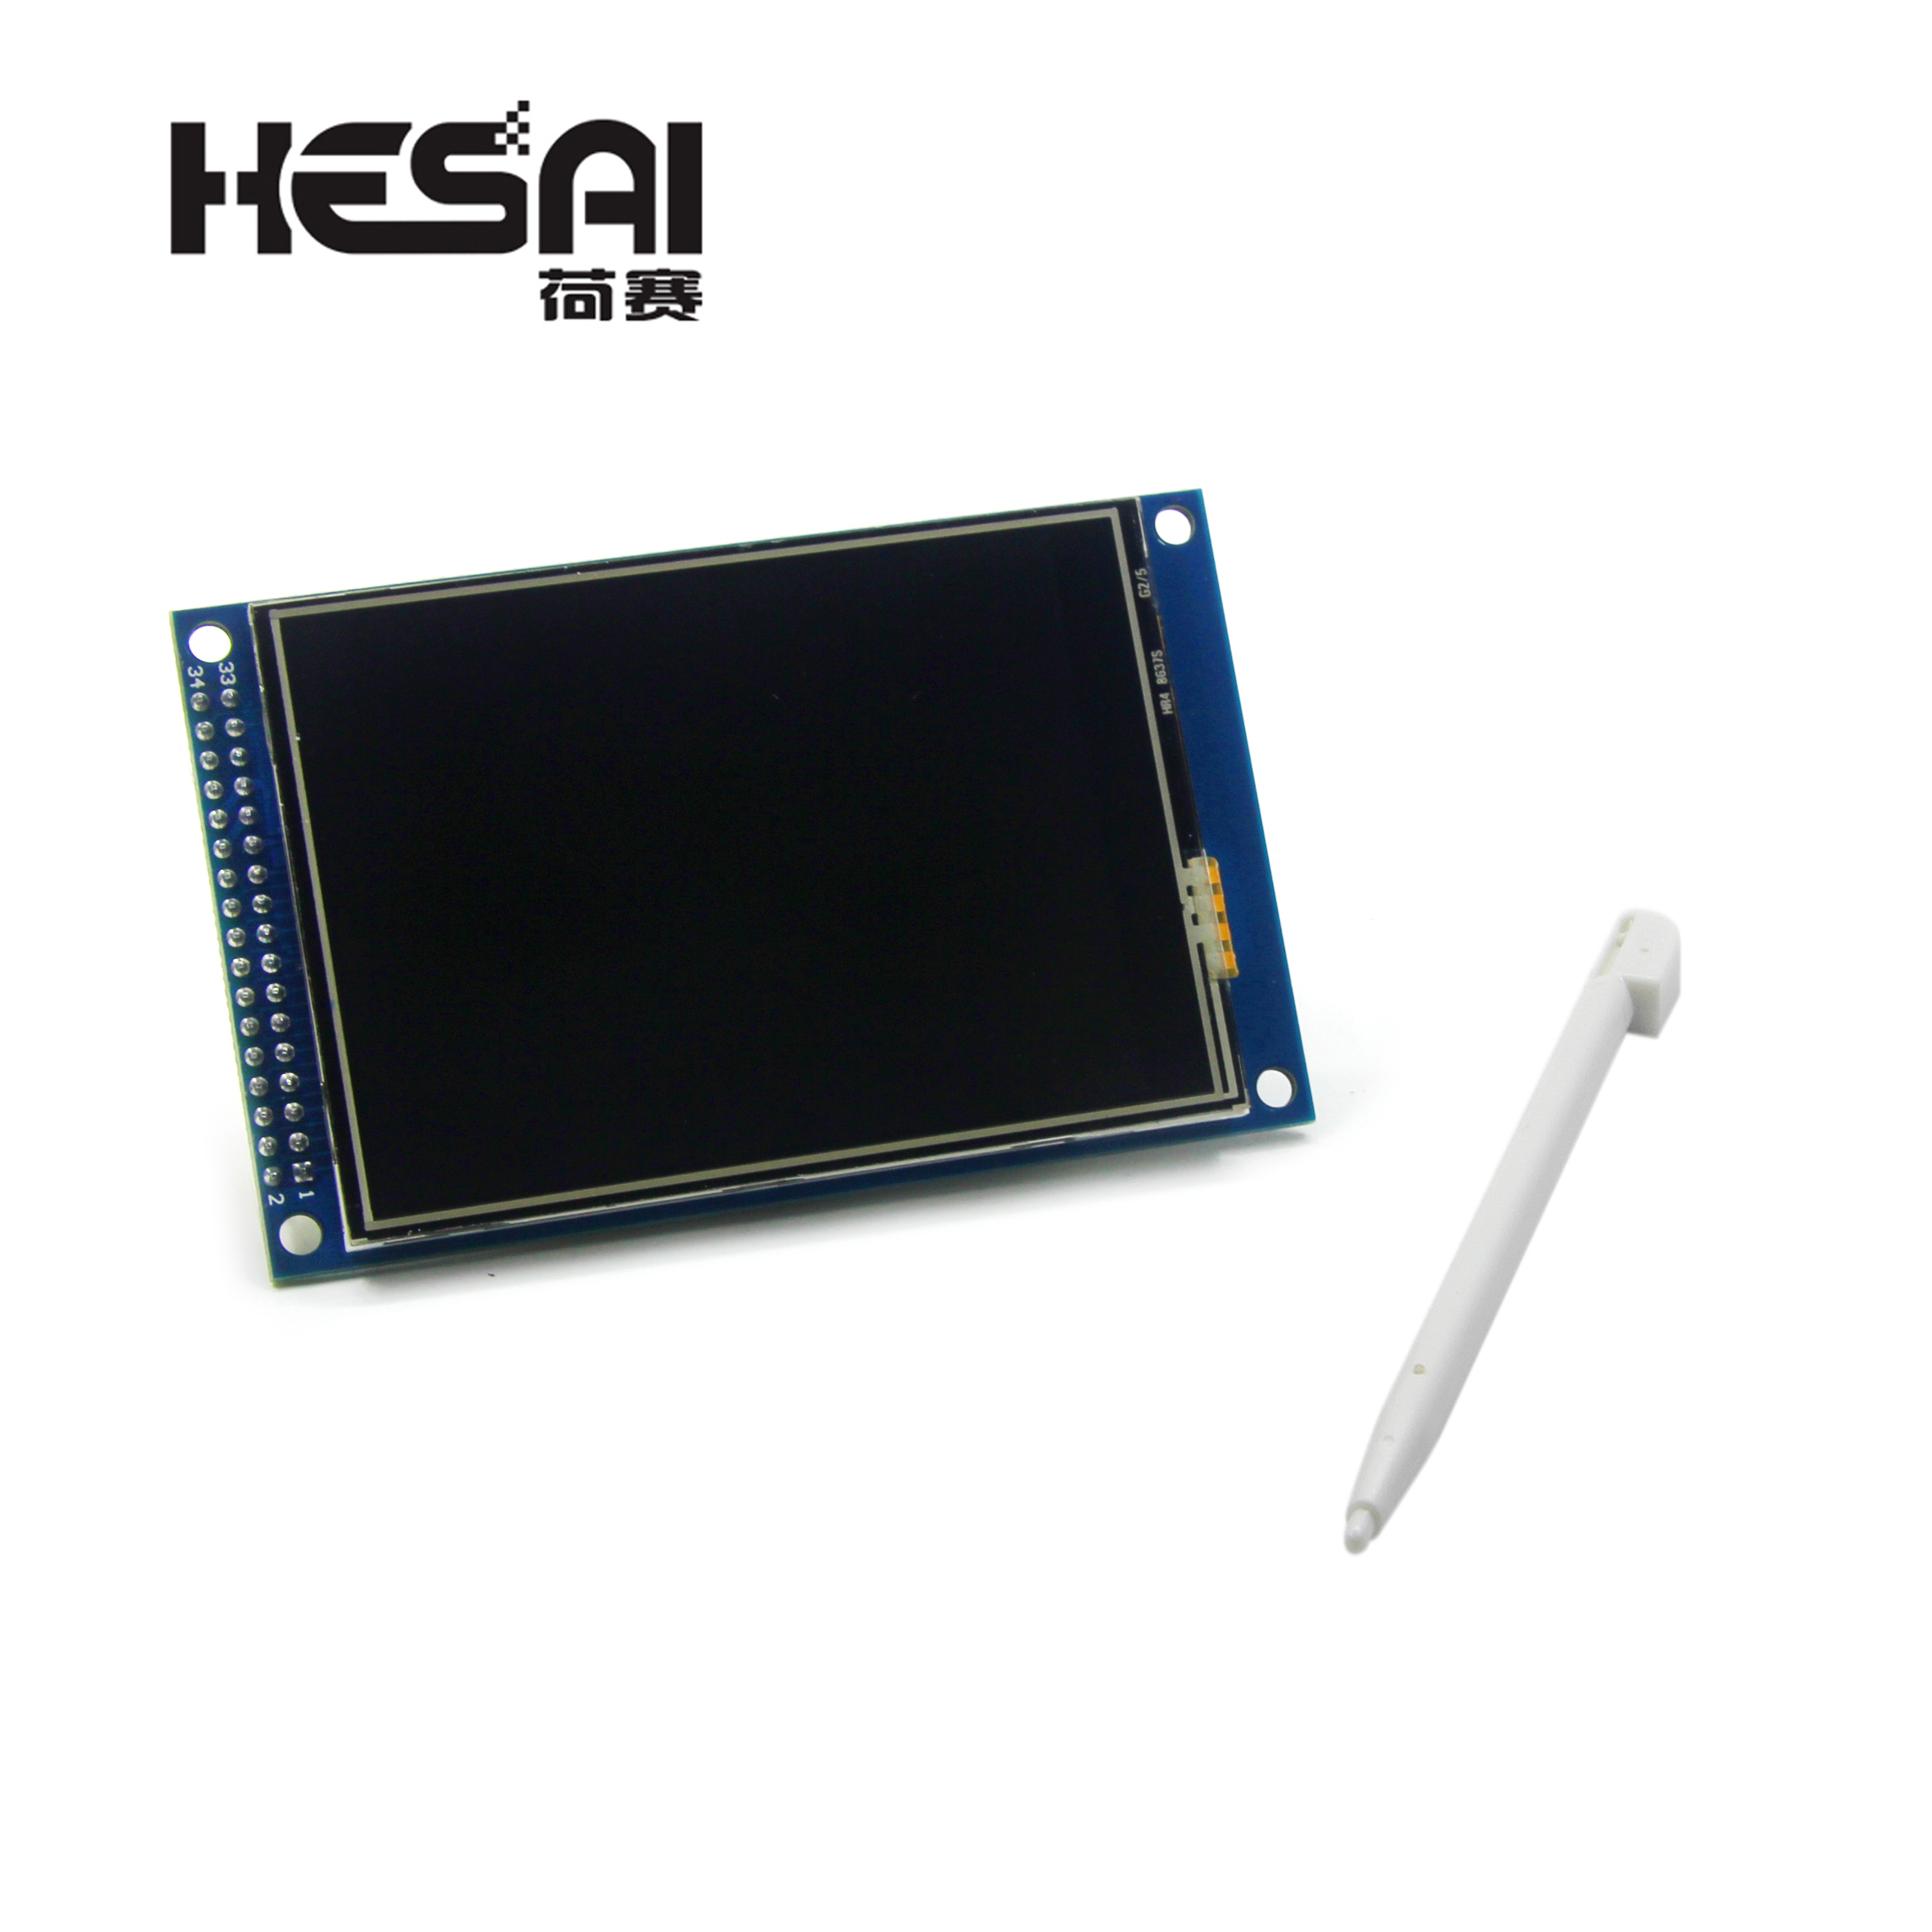 LCD 3.2 Inch TFT Touch Screen Module Display Ultra HD ILI9341 For STM32 240x320 240*320 For Arduino Diy Kit